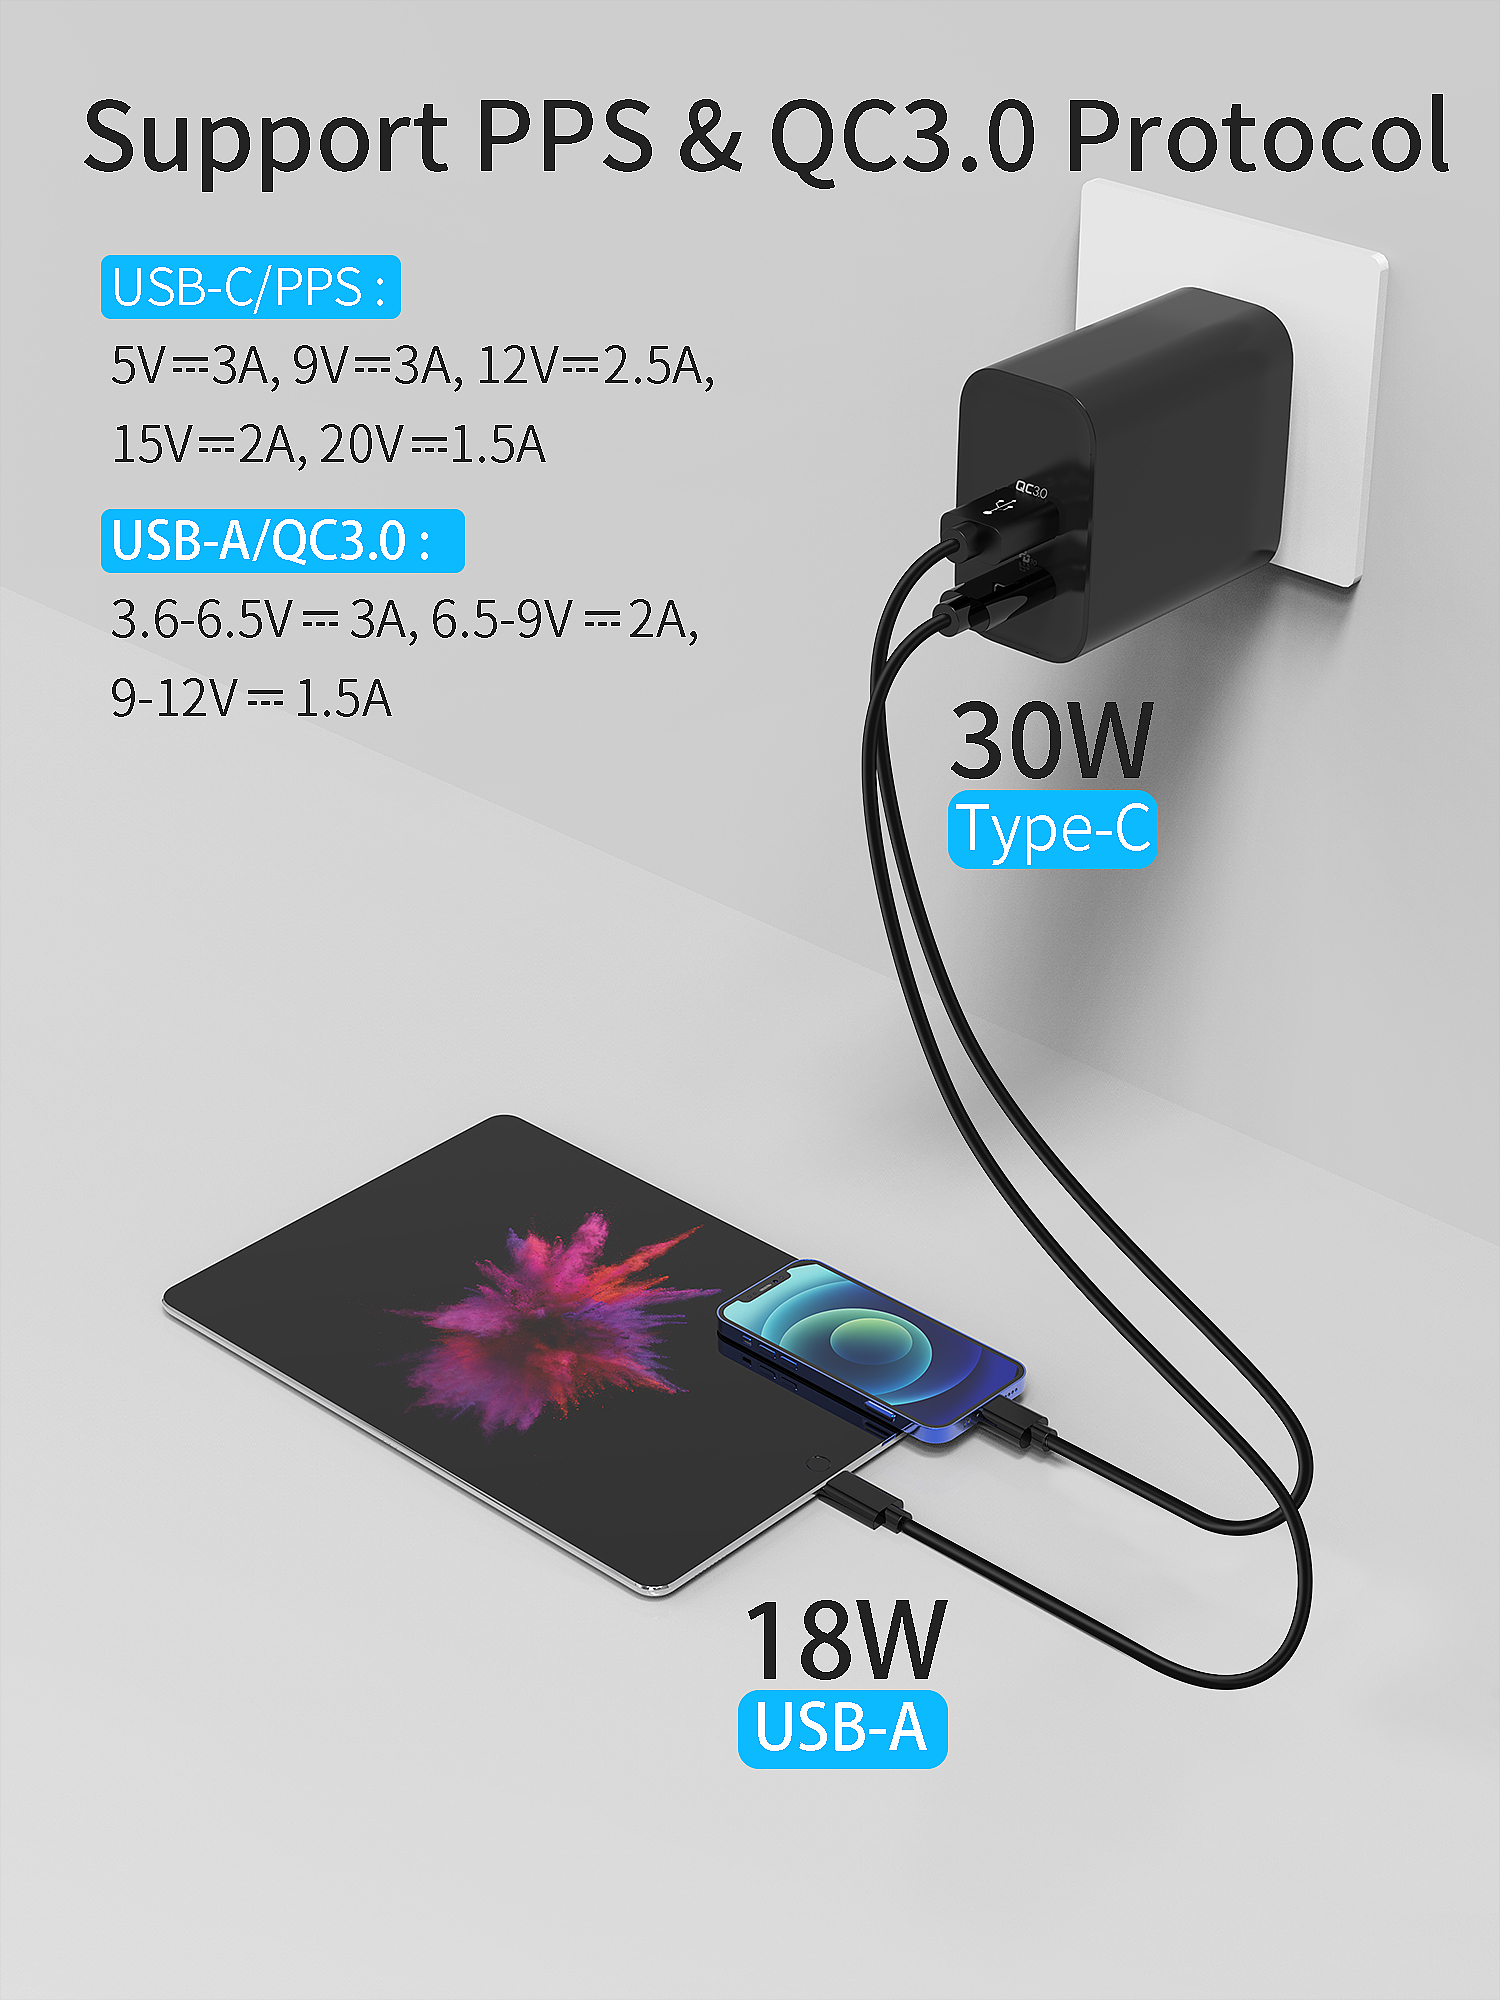 qc3.0 pd fast 30 watt usb c charger for mobile phone 30w us charger pd 30w wall charger